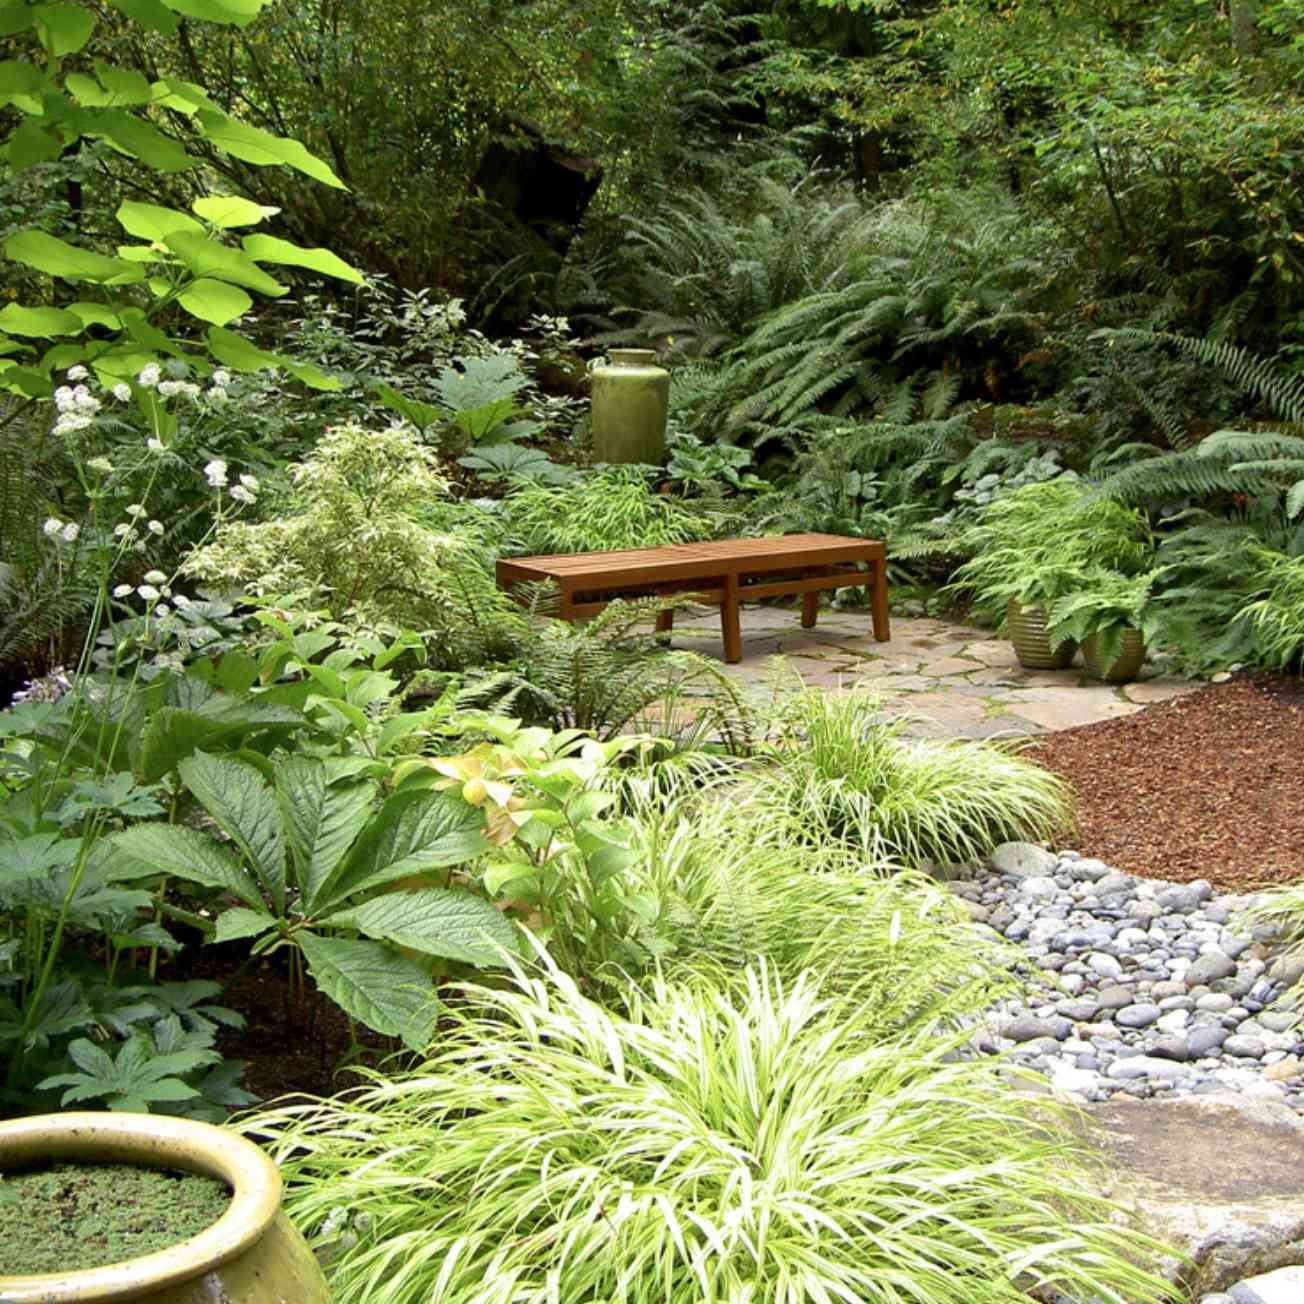 Shade garden with rocks and bench.